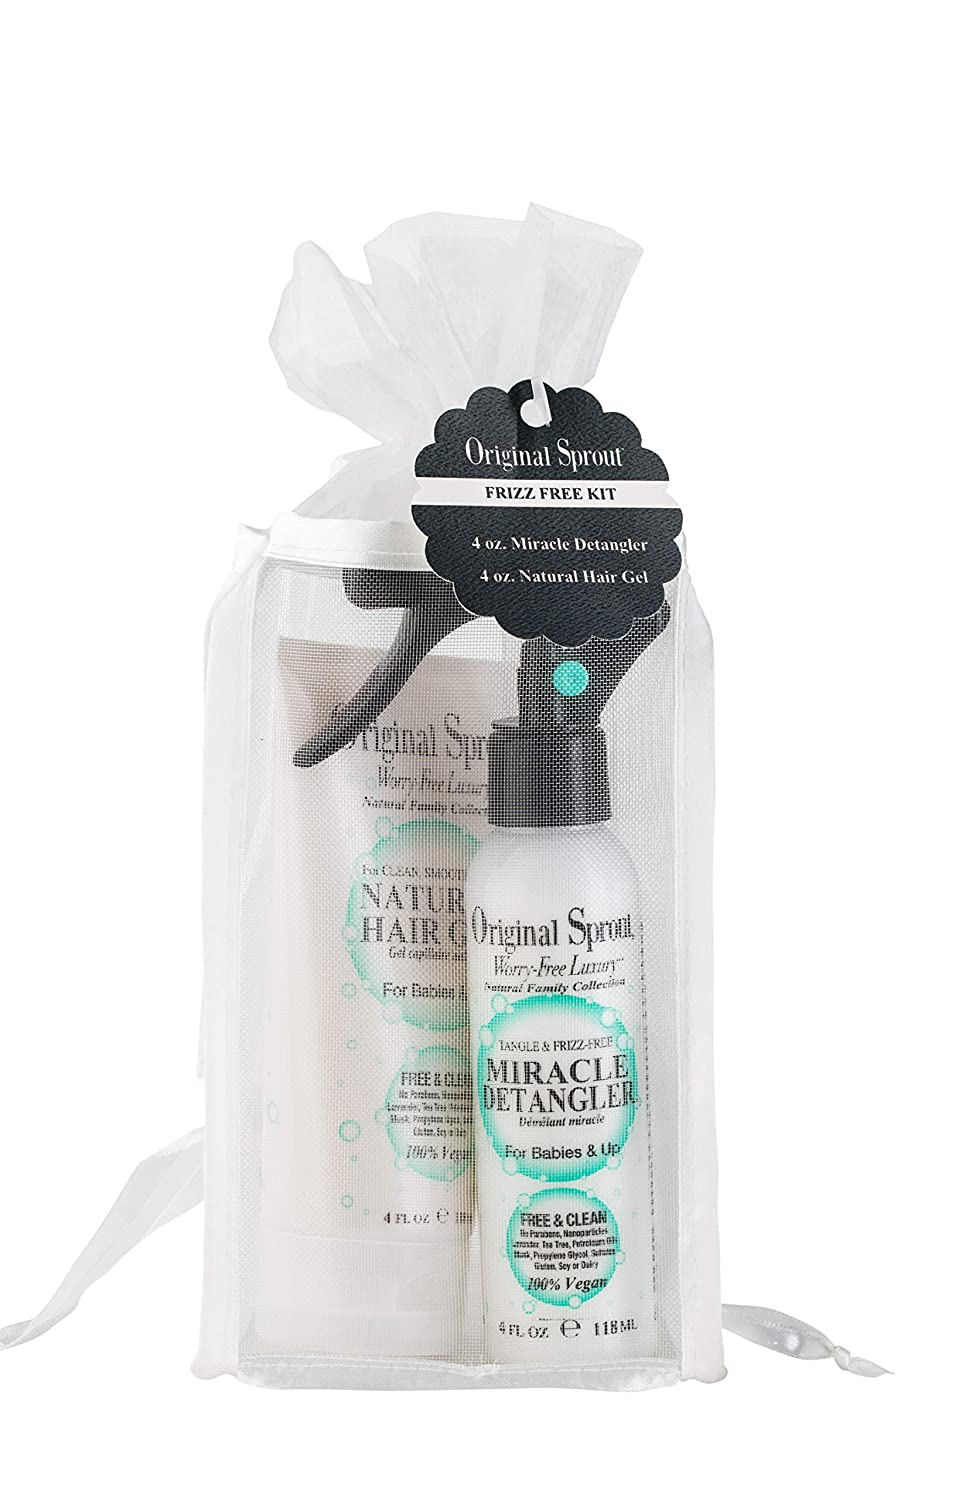 Original Sprout Frizz-Free Kit. Classic Hair Gel, and Miracle Detangler. 4 Ounces Each. Vegan and Dermatologist Tested Smoothing and Styling Gel to Tame Frizz and Fly-Aways.